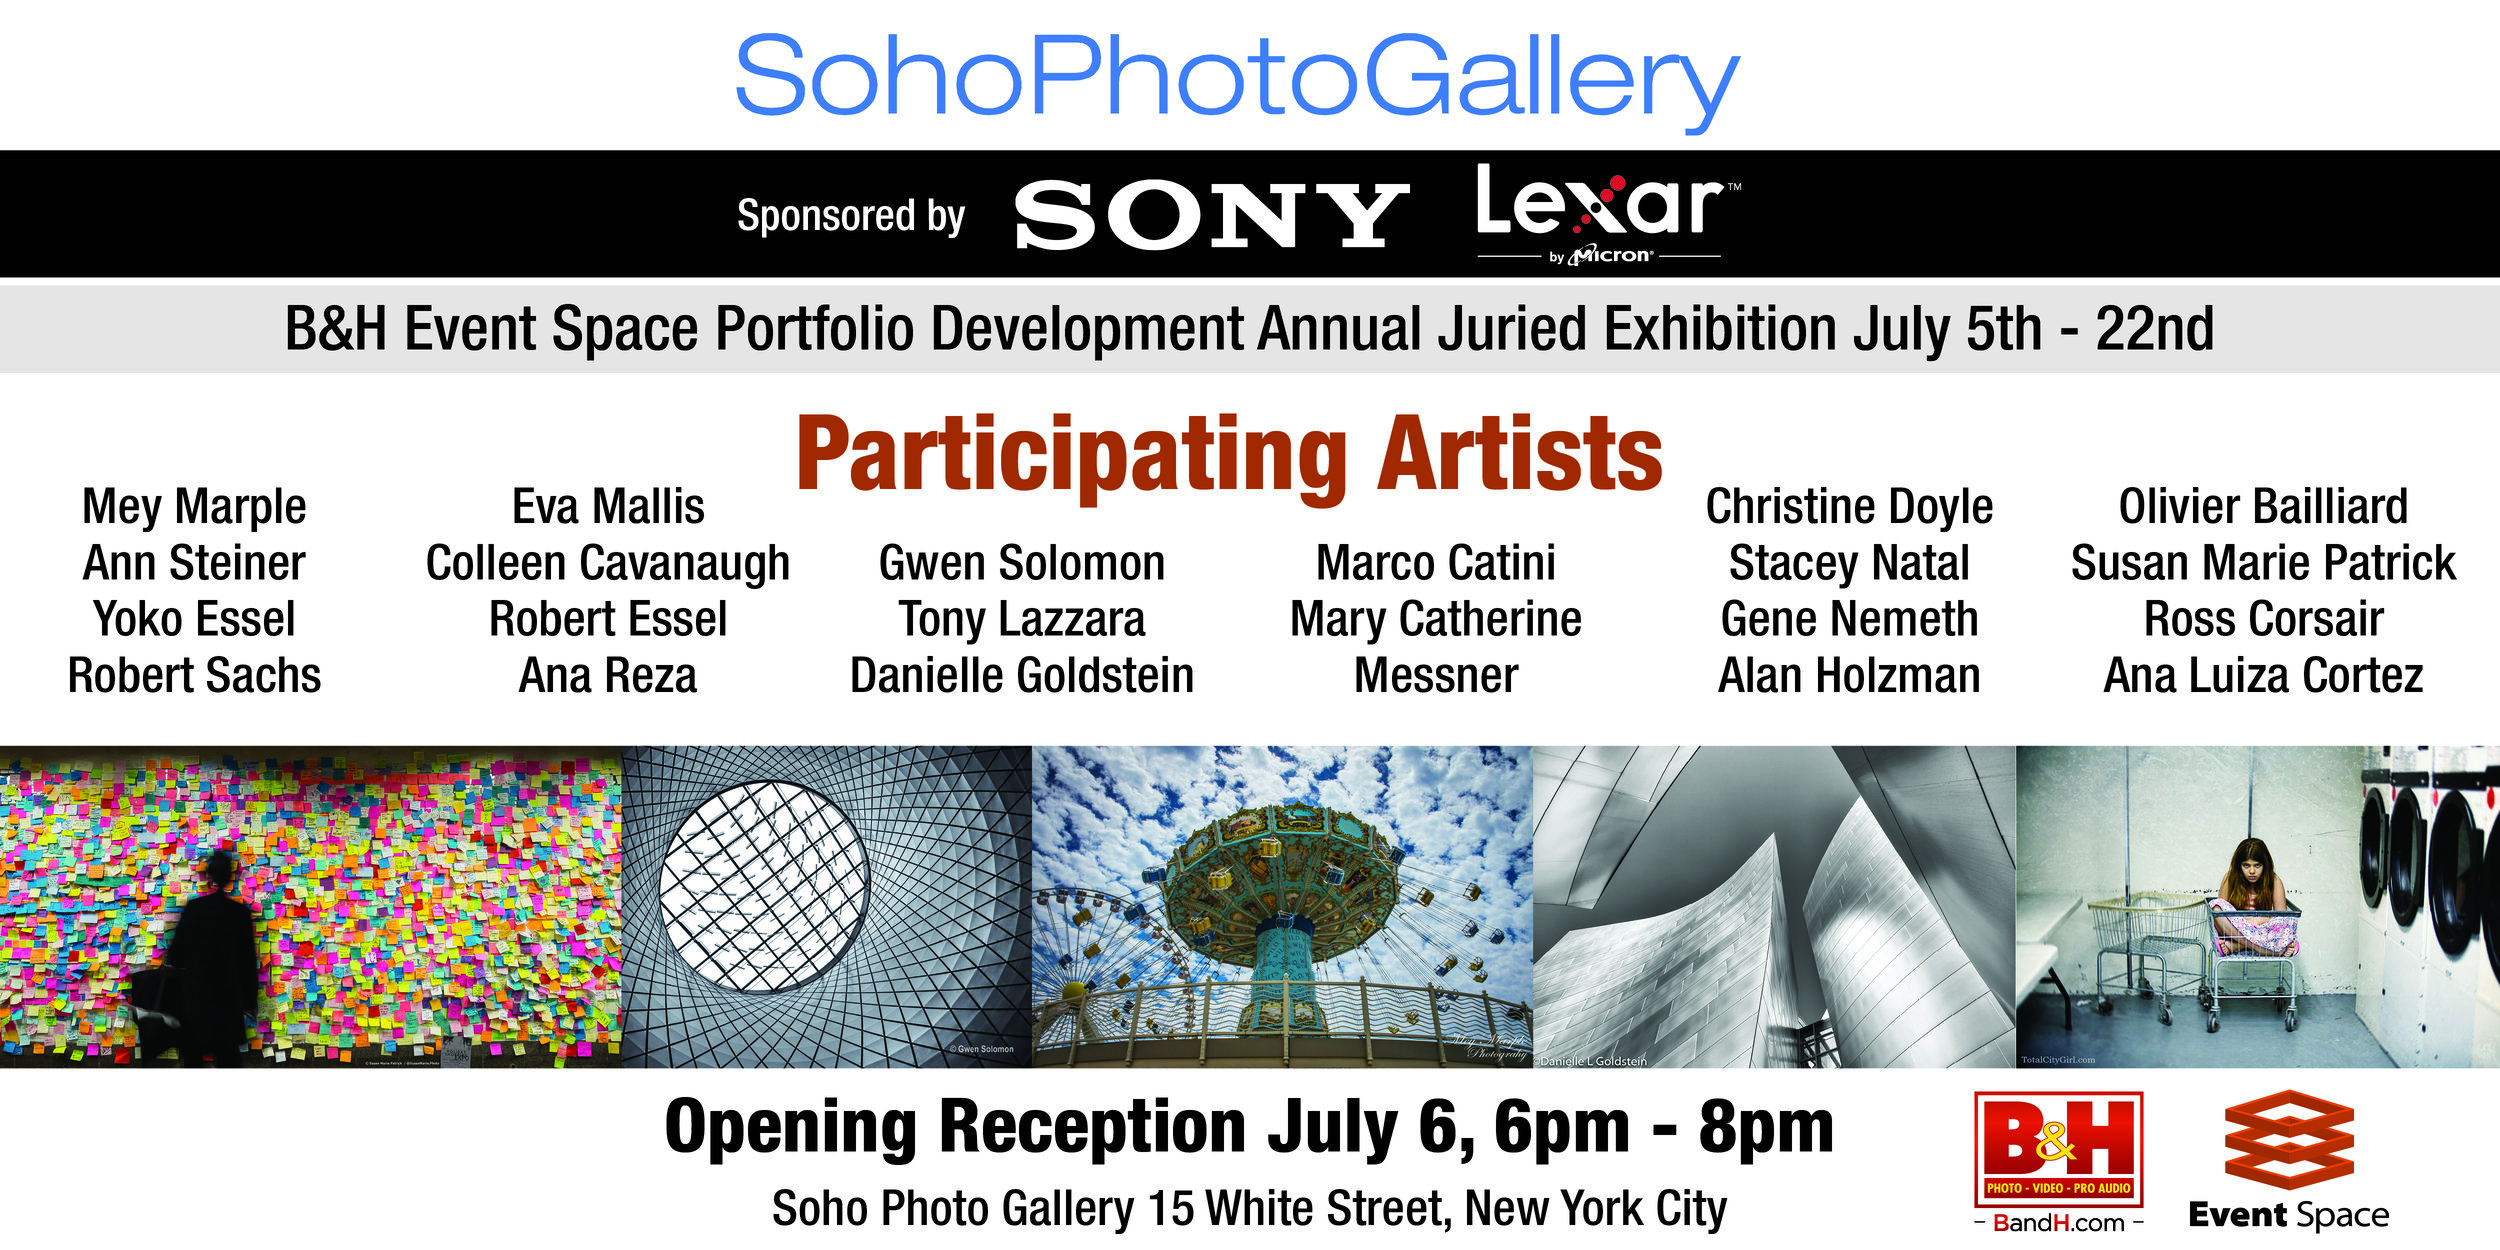 SohoPhotoGallery Announcement